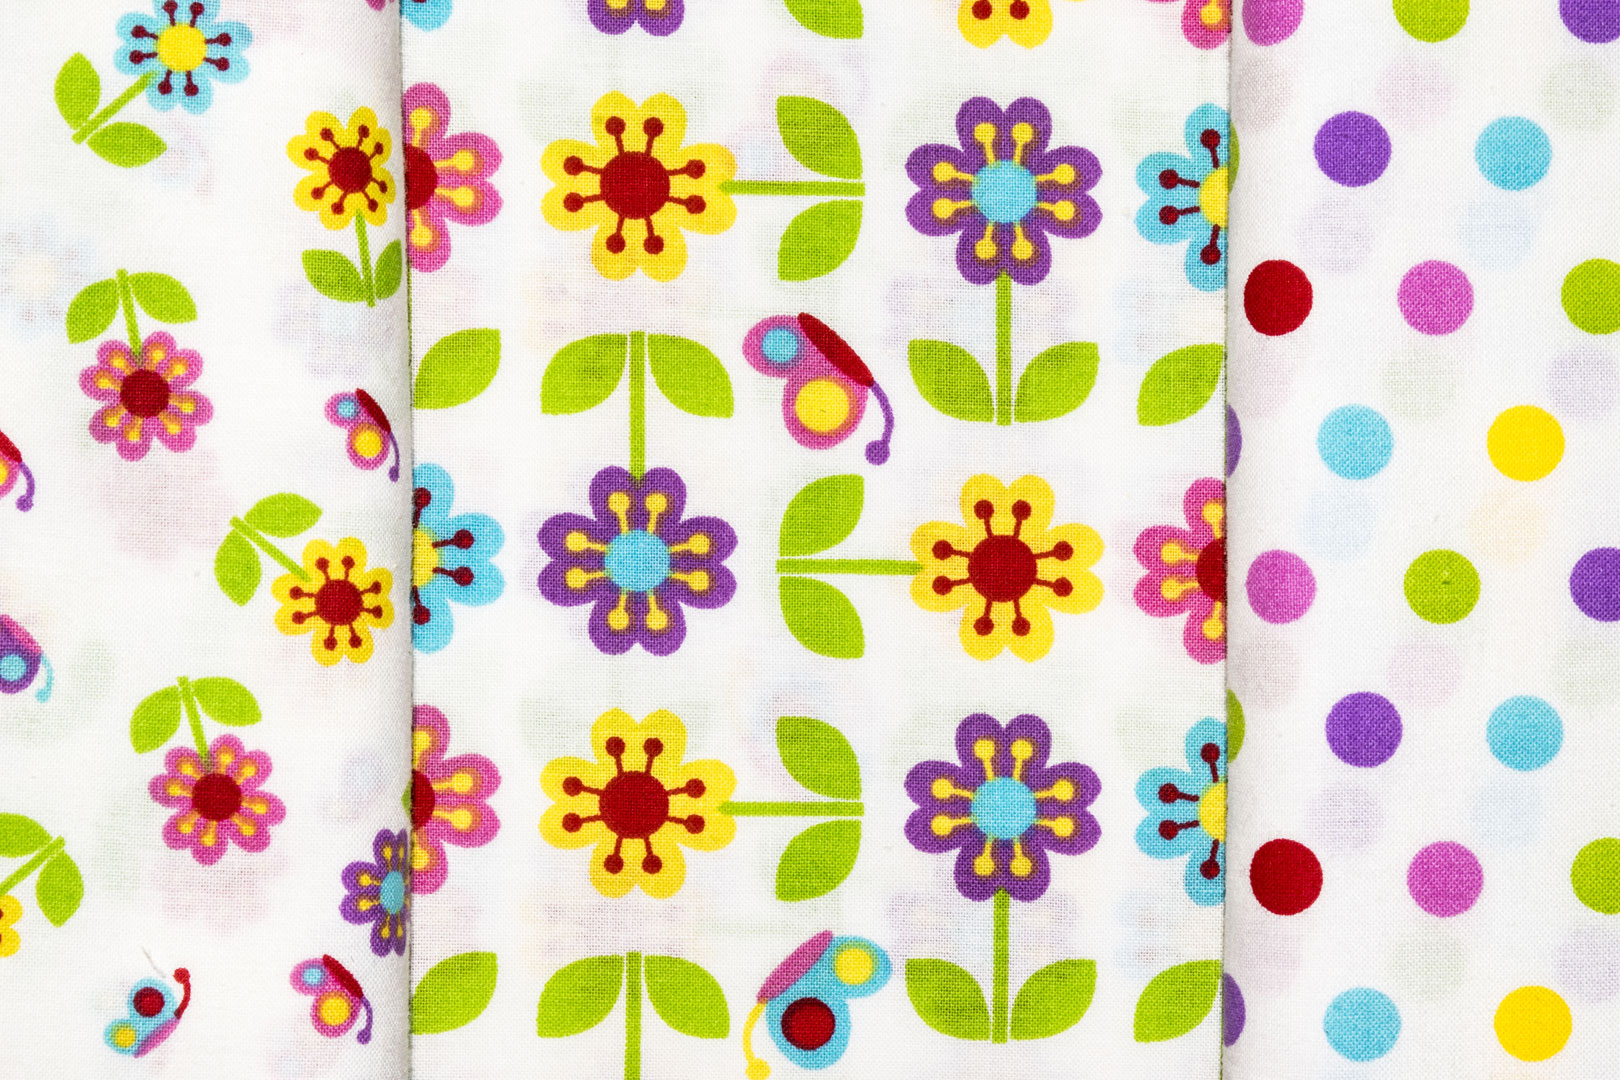 SPW 210: Floral